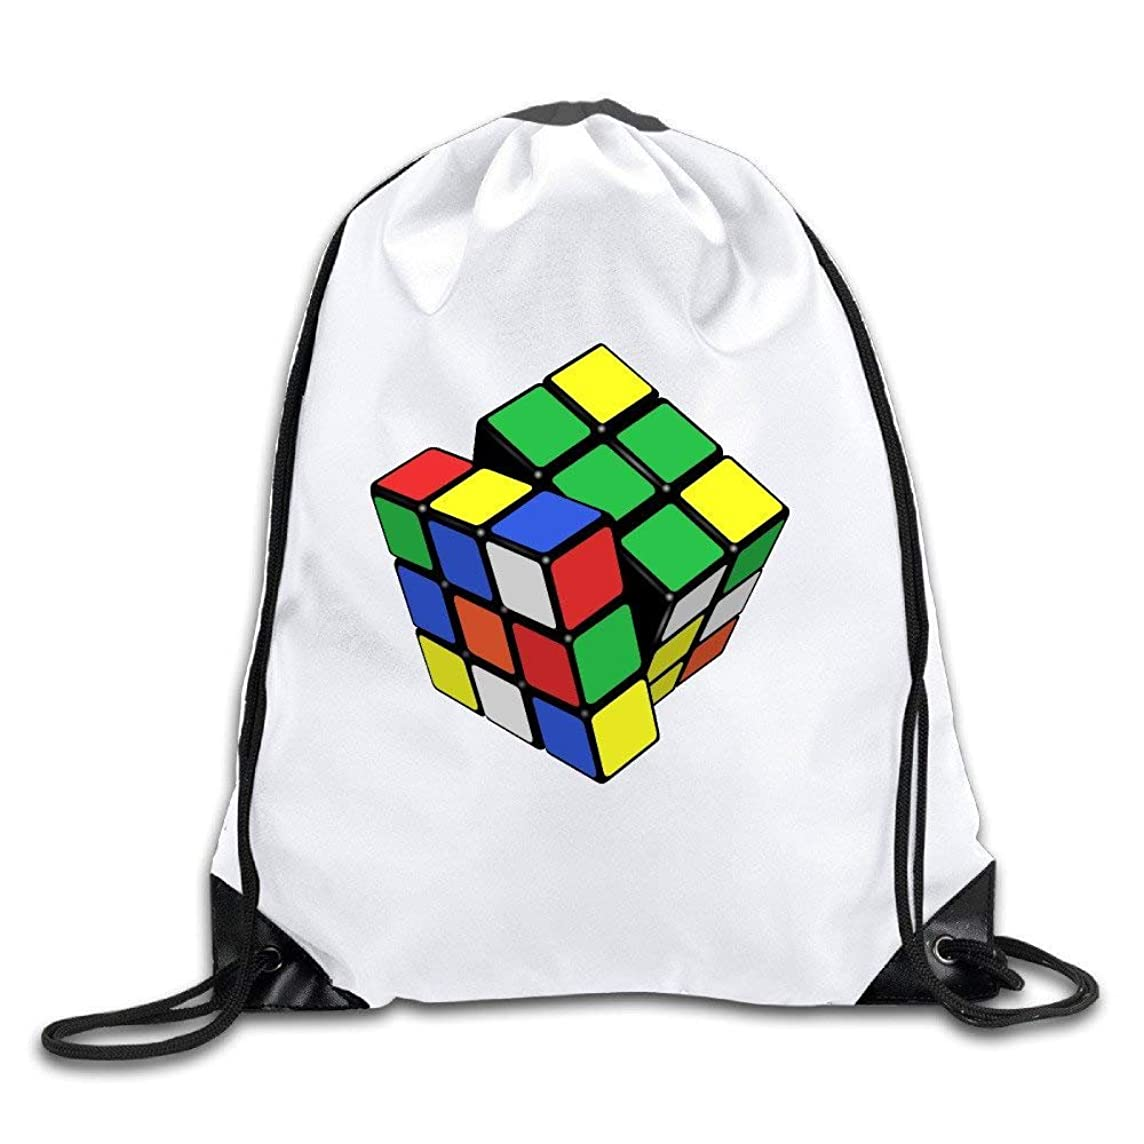 Unisex Drawstring Bags Chef Cook Cooking Hat Sports Fitness Backpack Gymsack